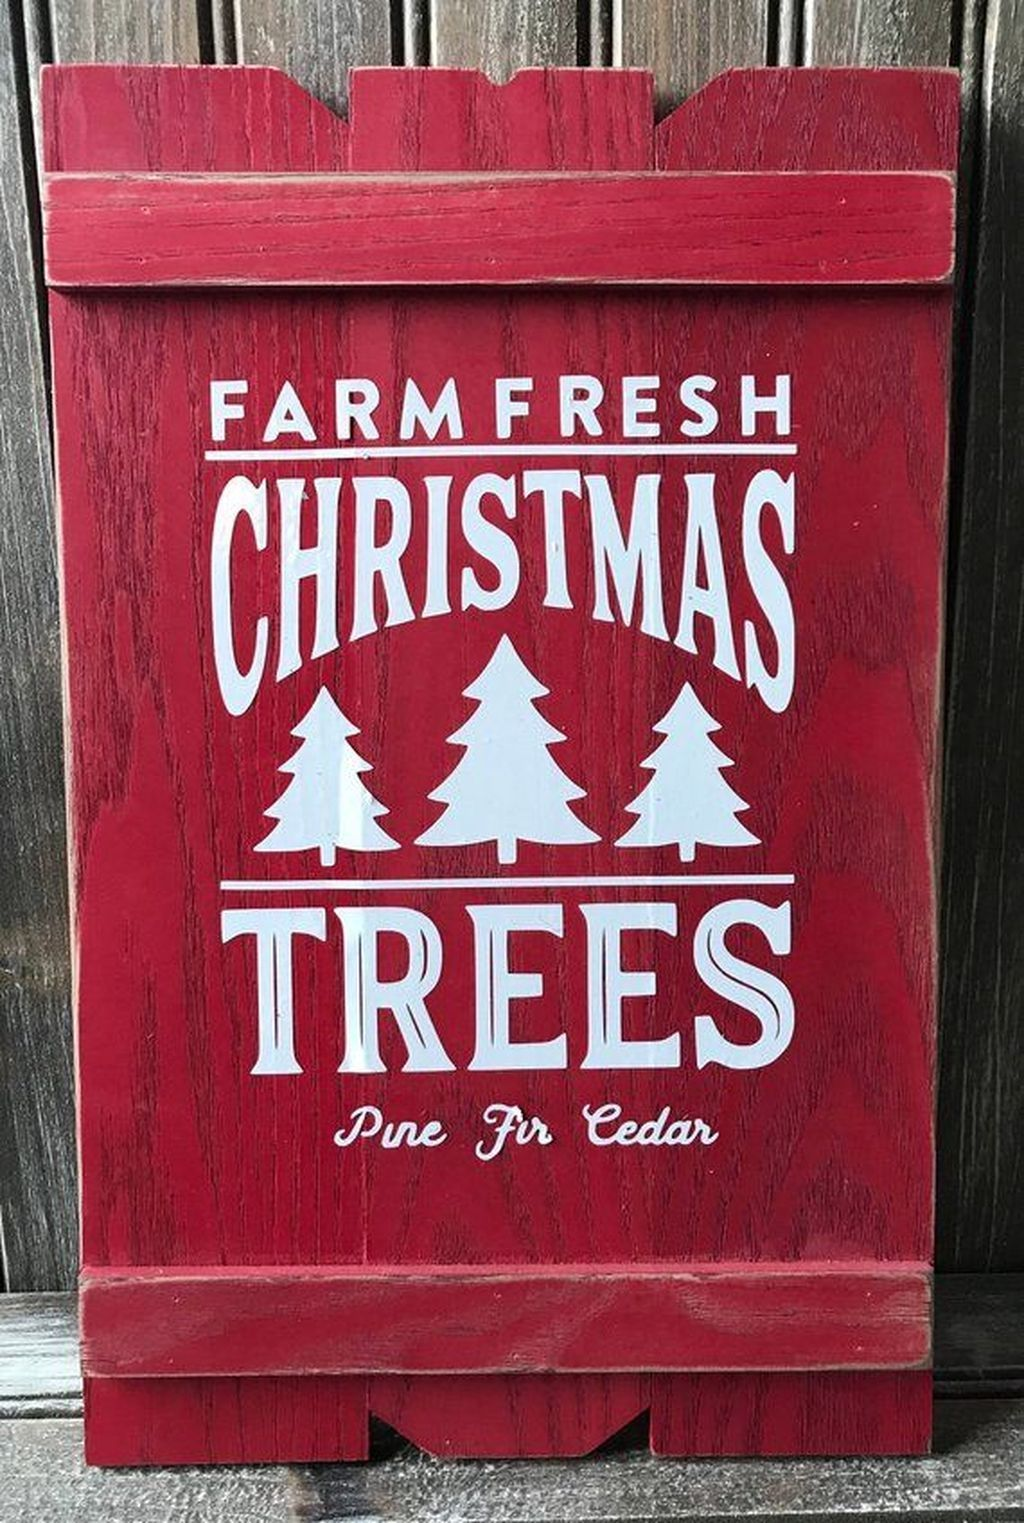 44 Perfect Farmhouse Christmas Tree Decorating Ideas (With ...